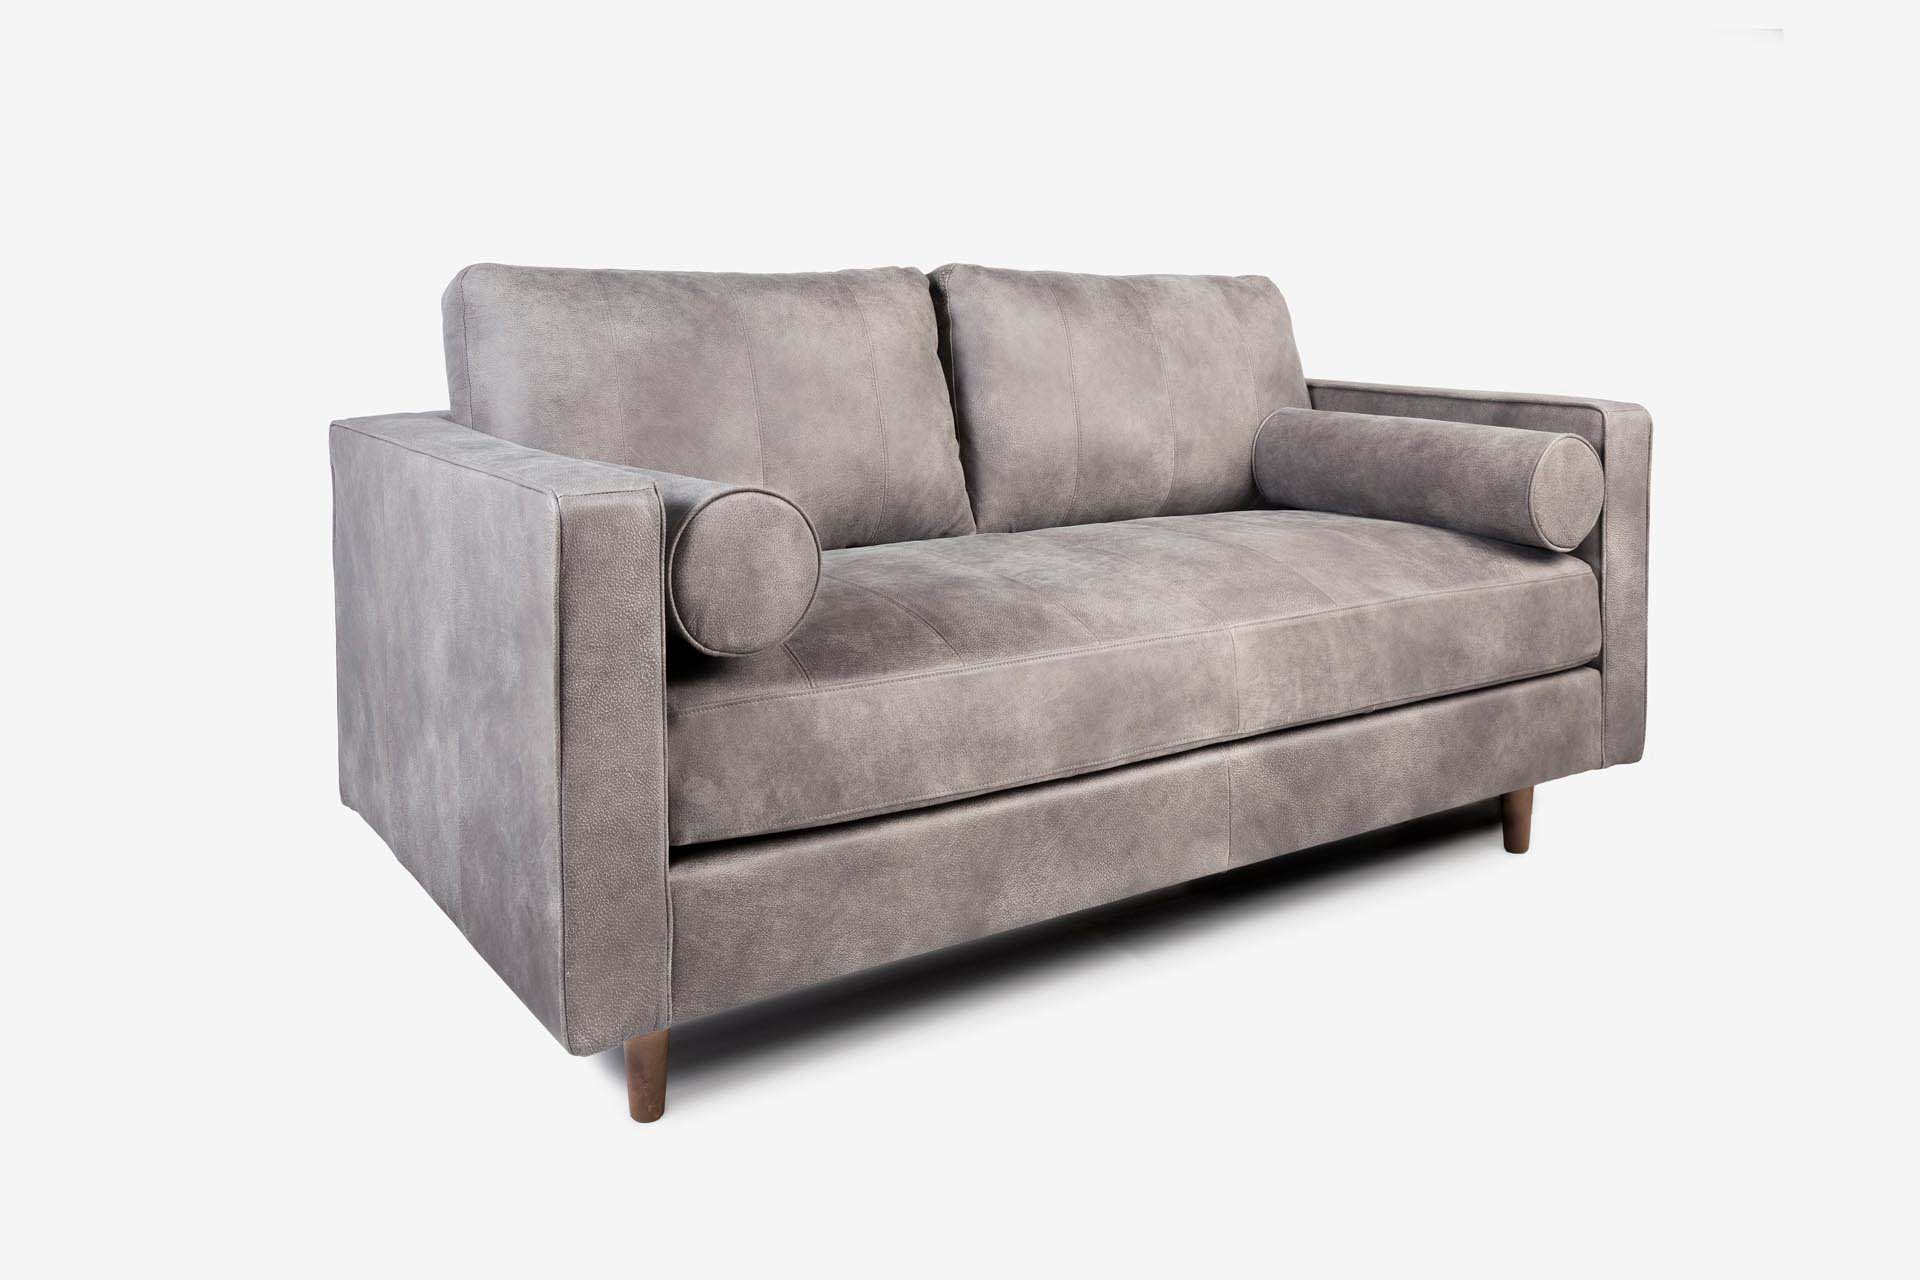 Cognac Leather Loveseat Sofa Grey Leather With Walnut Legs